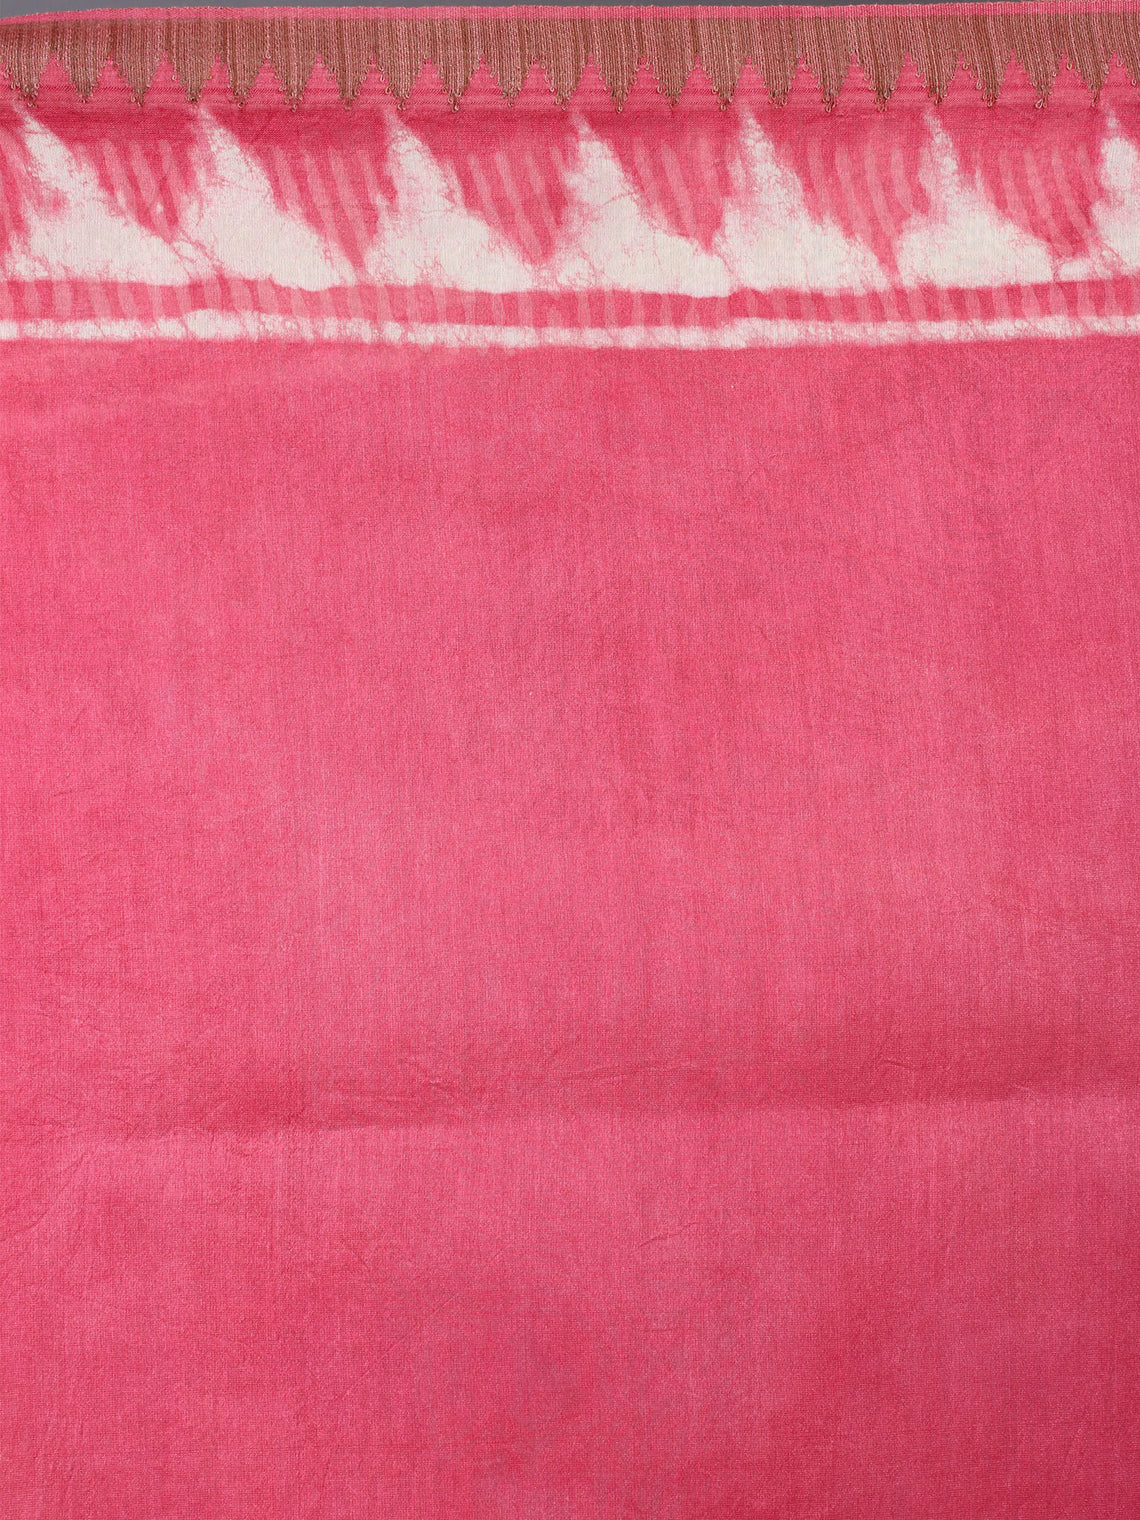 Pastel Pink Beige White Hand Block Printed in Natural Vegetable Colors Chanderi Saree With Geecha Border - S03170386